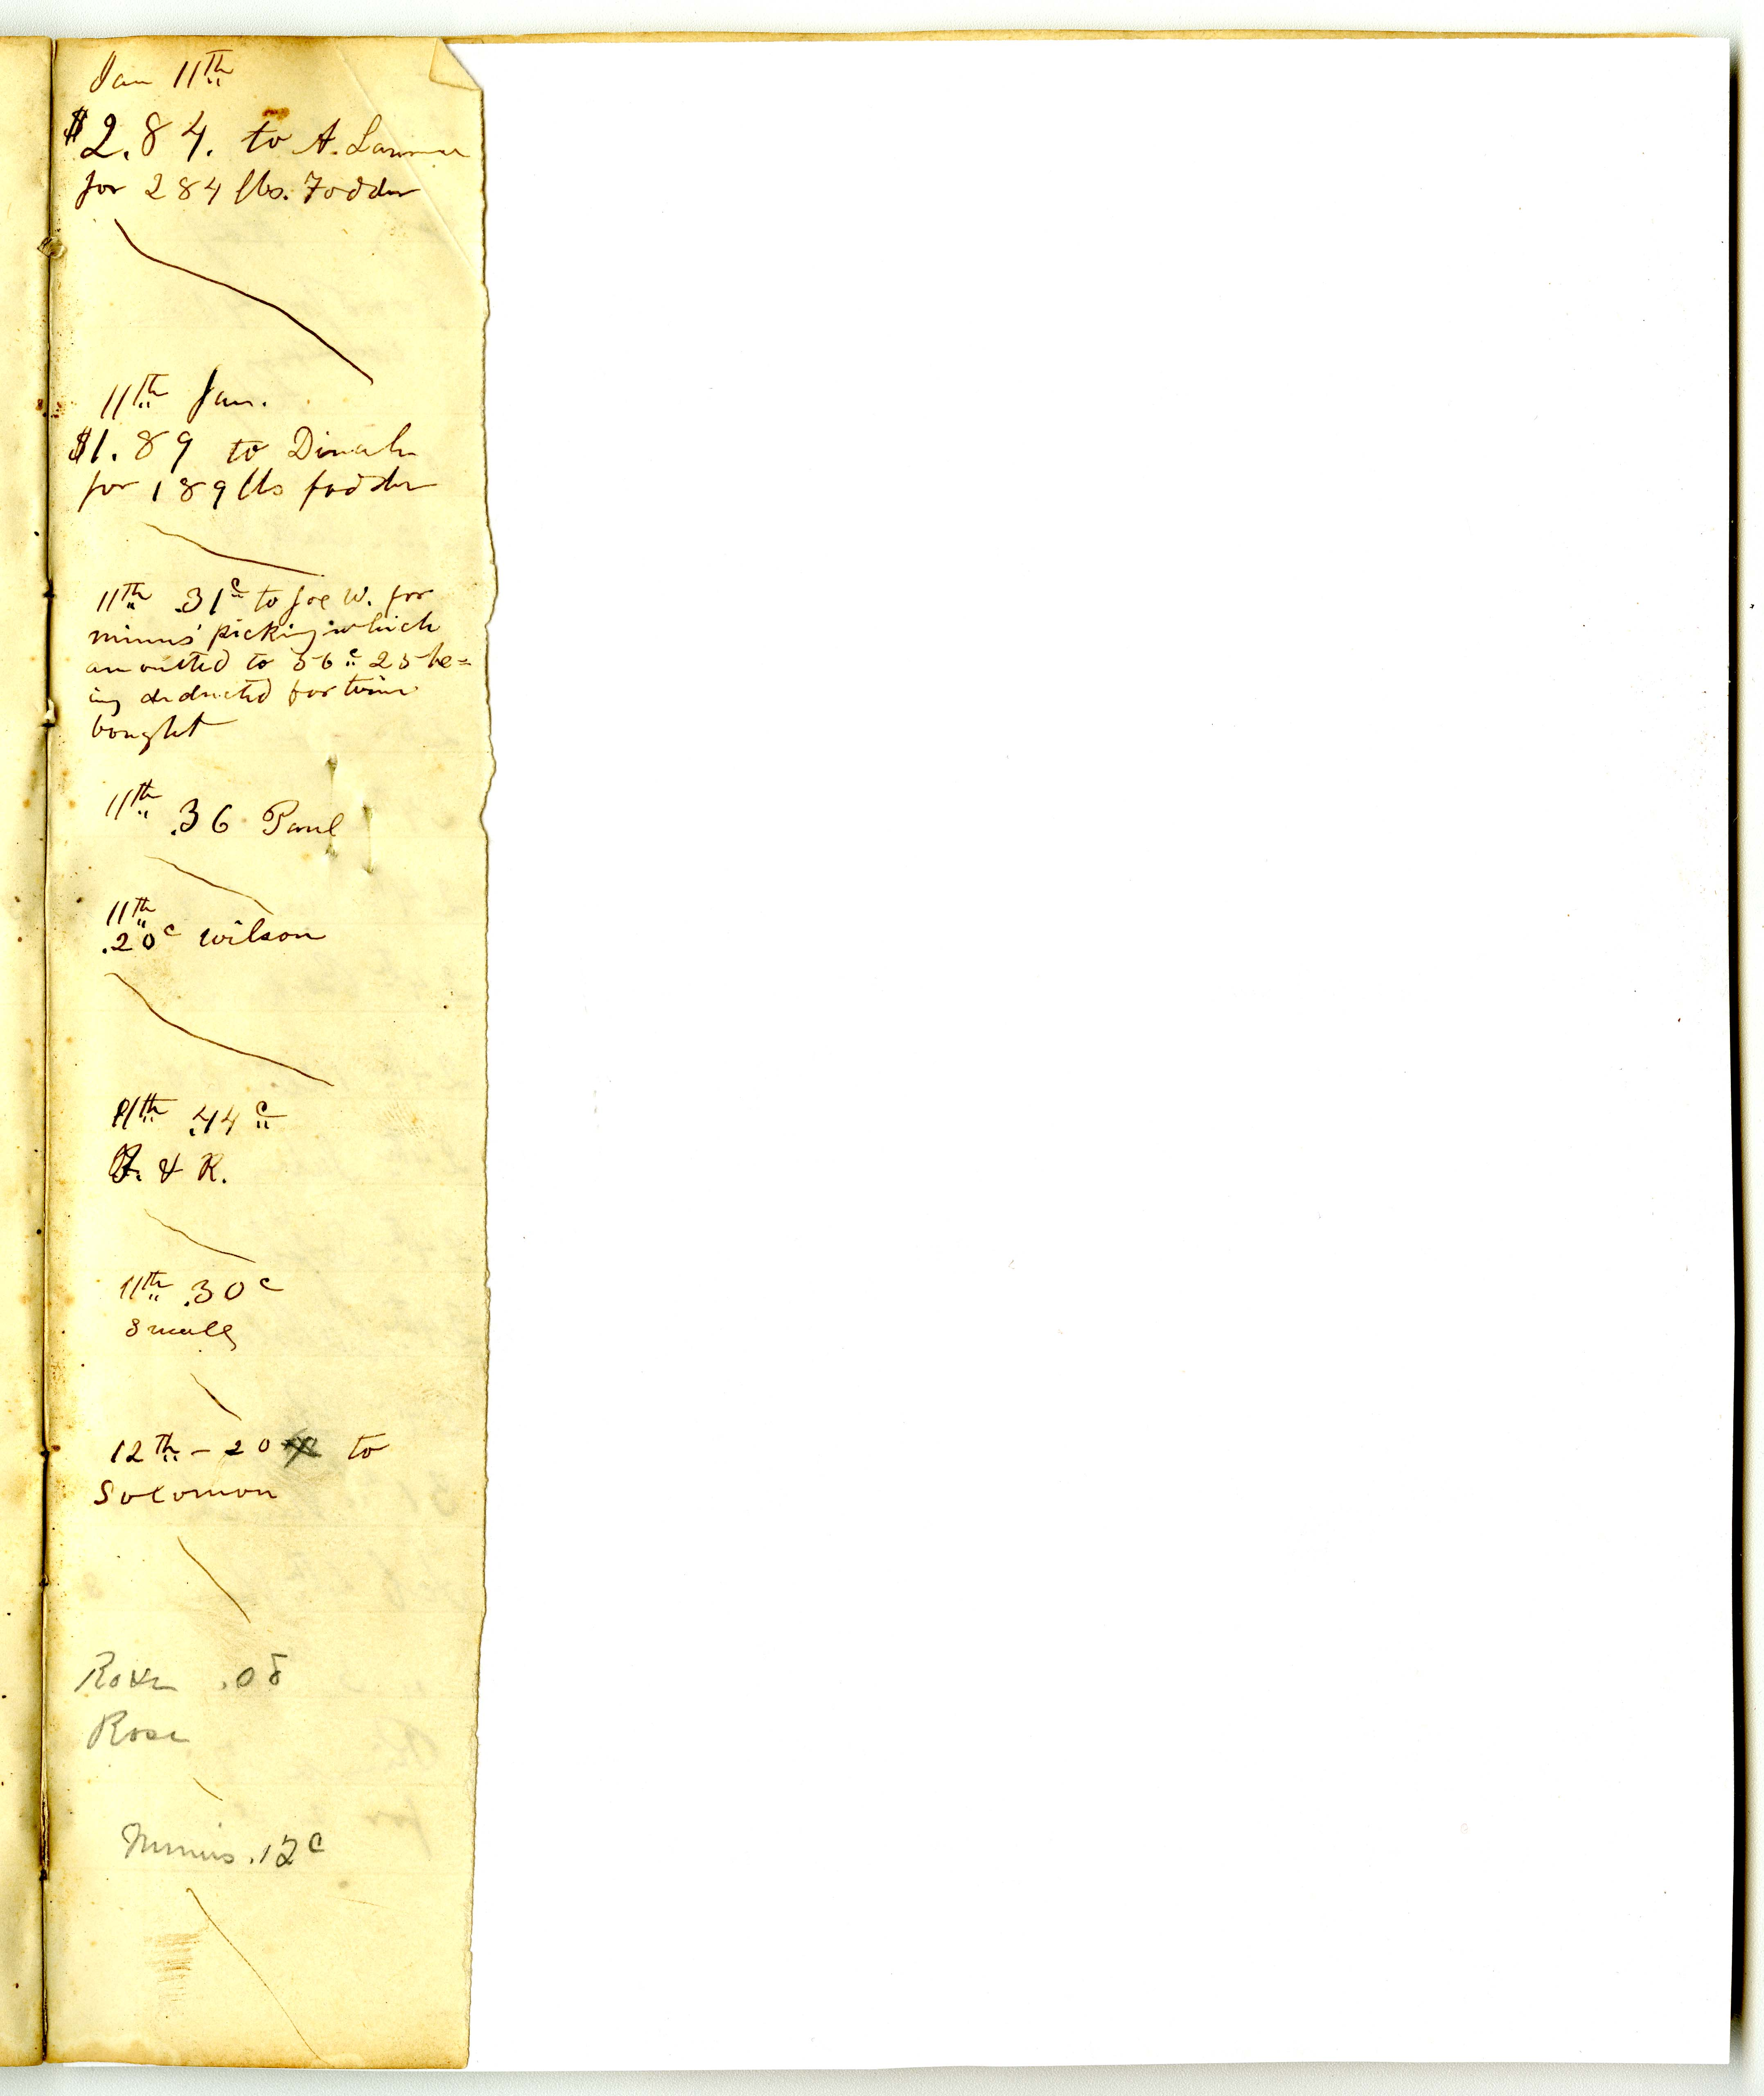 R.L. Johnson Medical Journal, Page 227